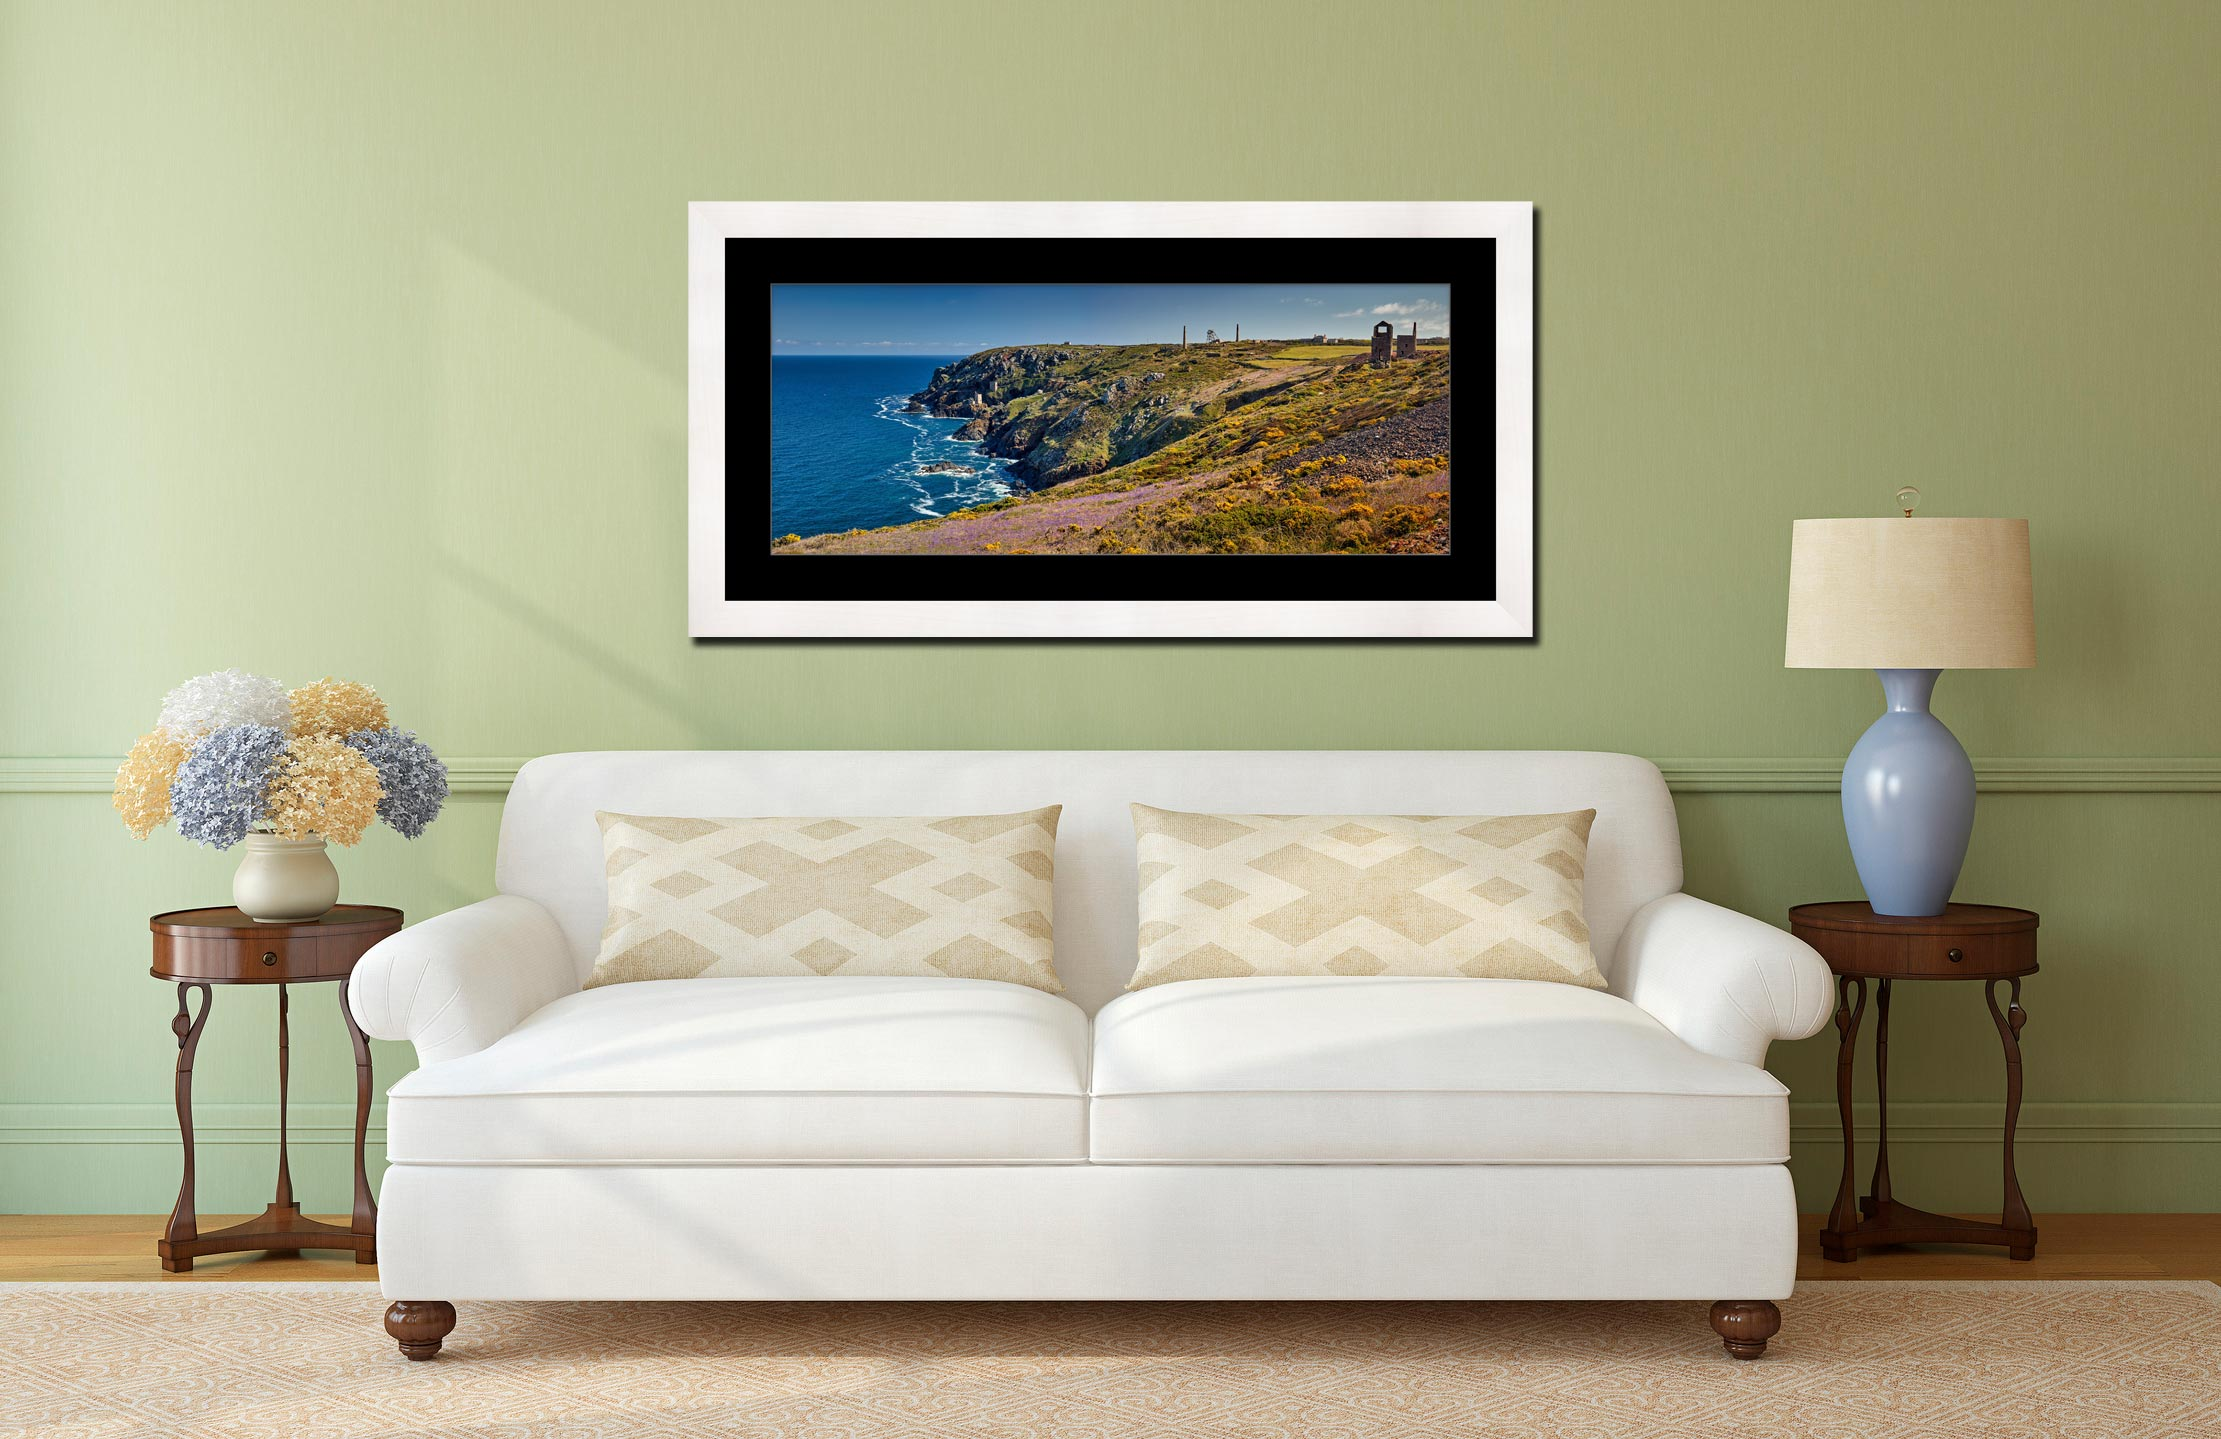 Botallack Bluebells - Framed Print with Mount on Wall